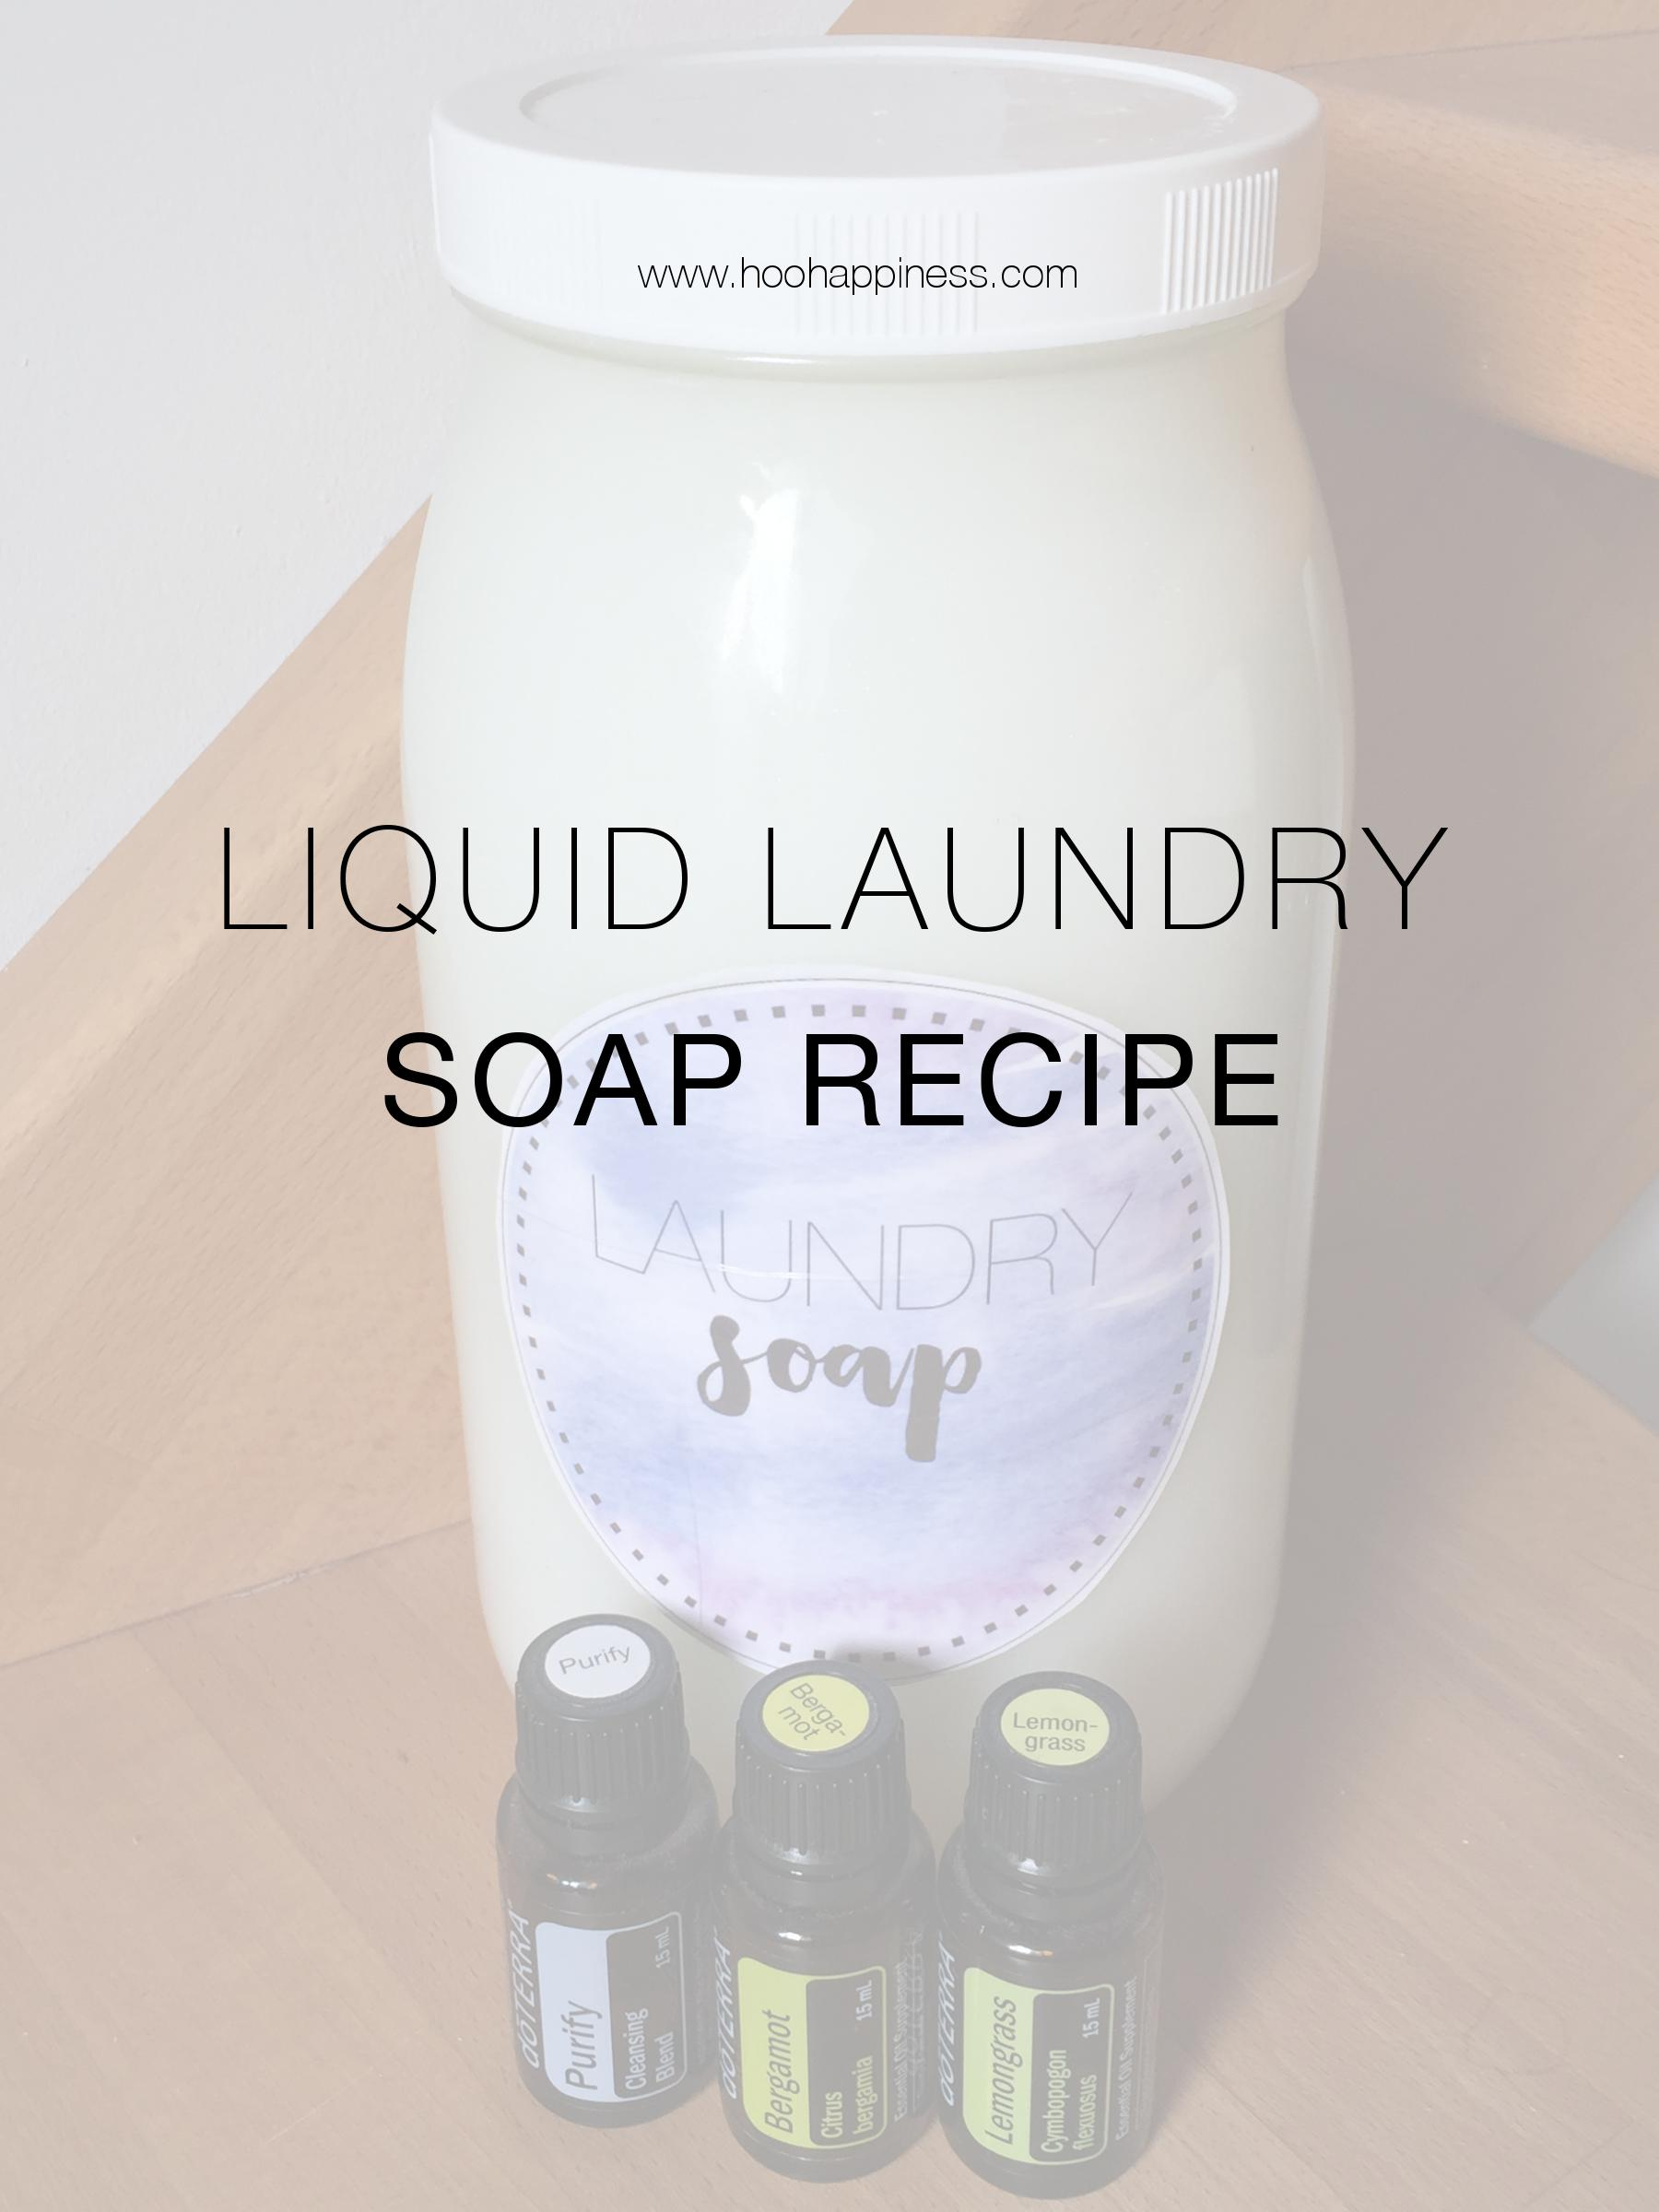 All natural do-it-yourself liquid laundry soap, HOO Happiness Blog